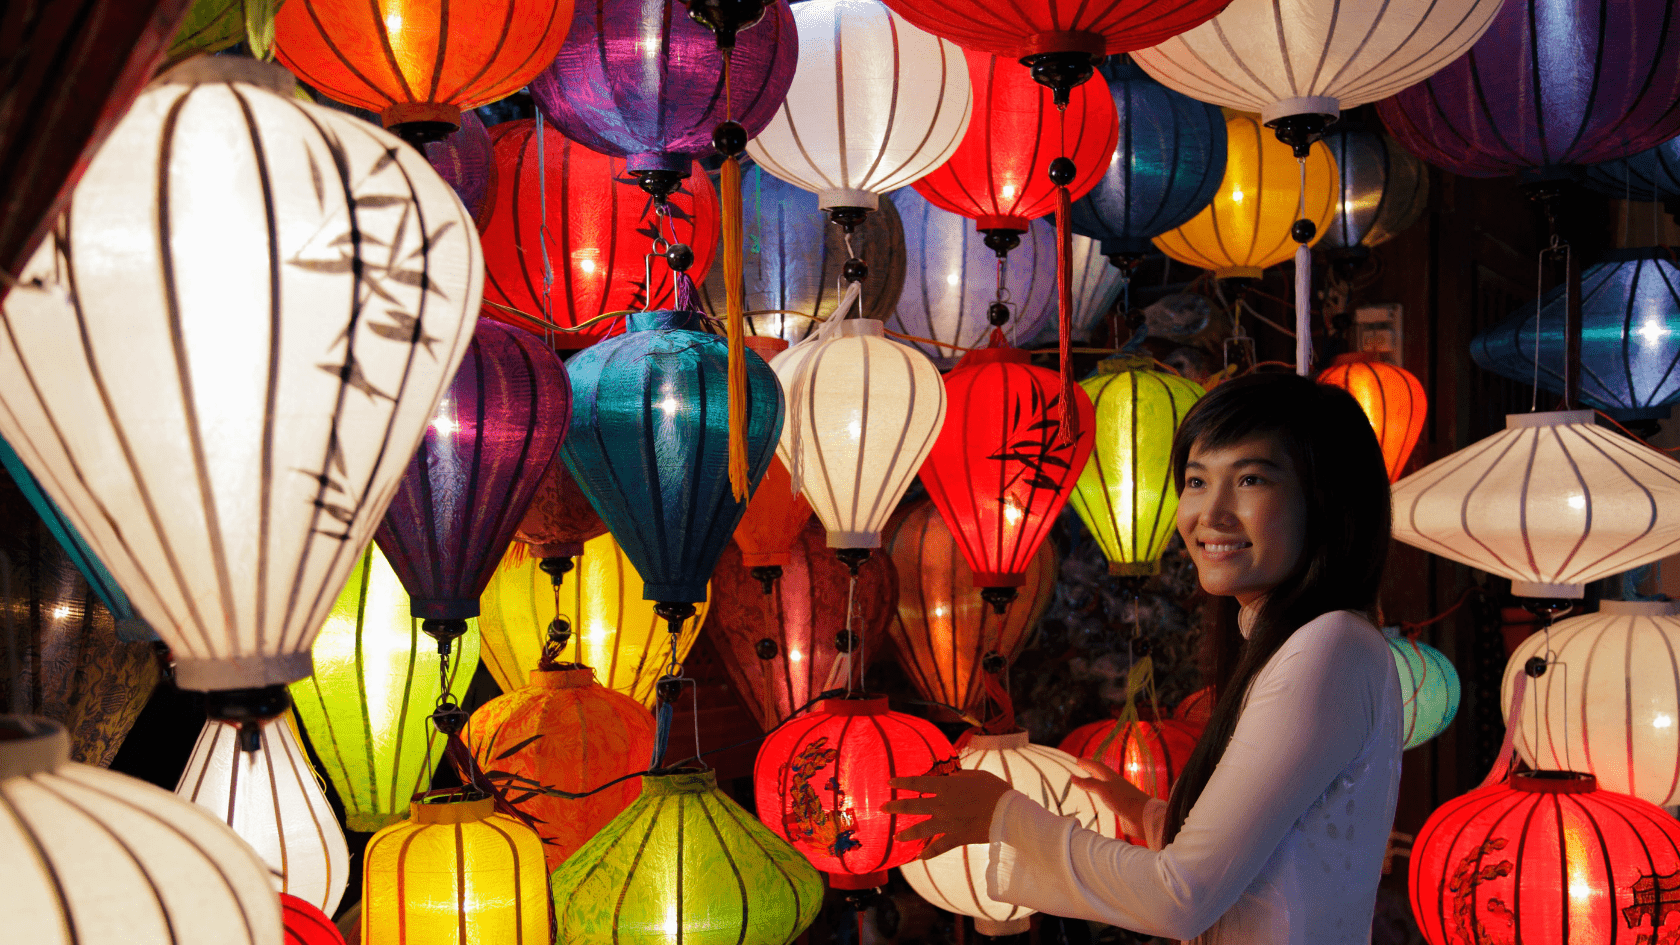 Vietnam has been rising in popularity over the years, both as a tourist country and for English teaching.